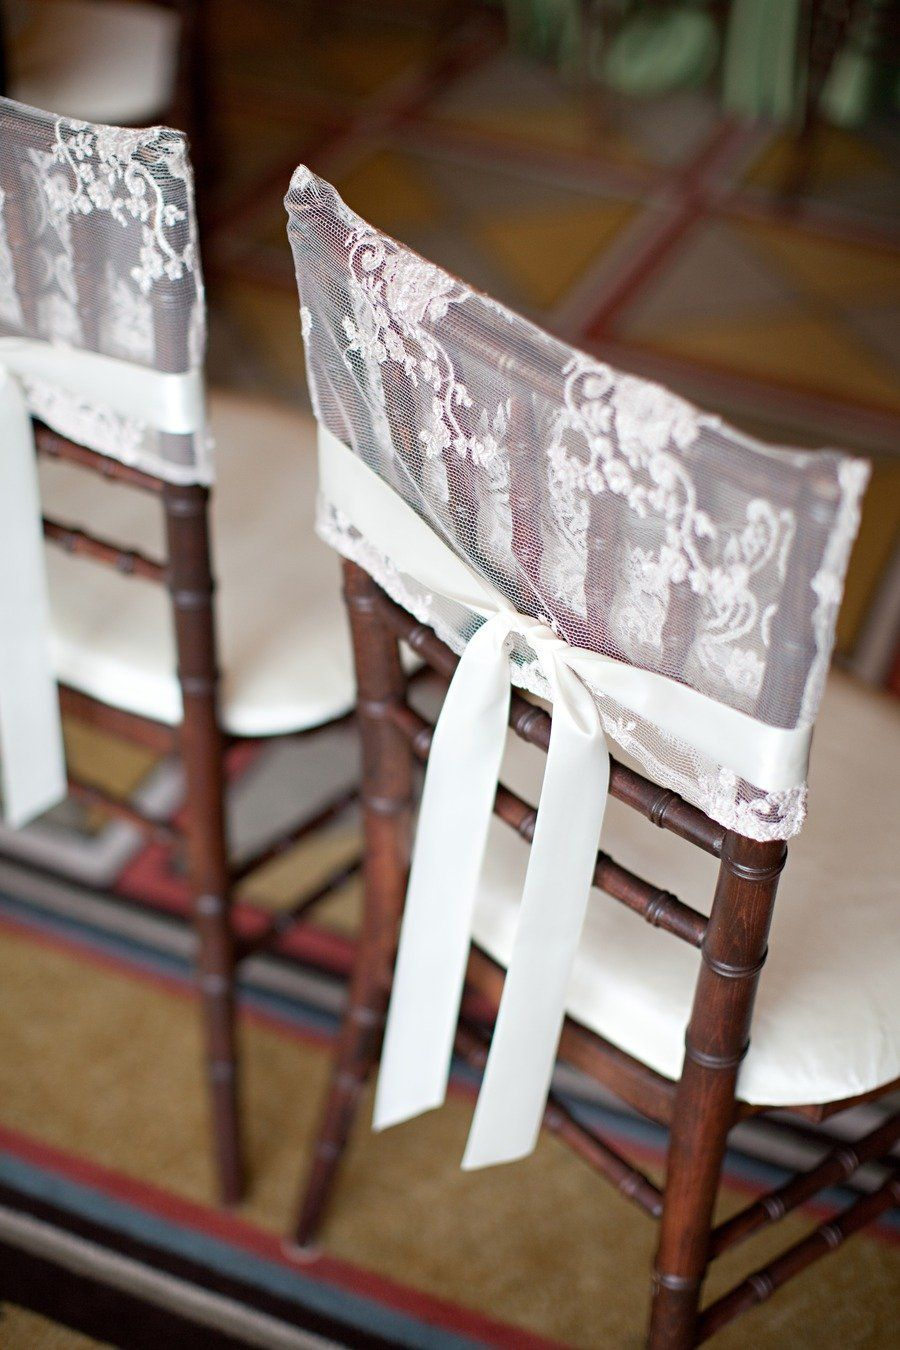 Party Chair Covers Canada Ikea Easy Phoenix Wedding From Stephanie Fay Victoria Weddings And Pretty Lace Touch For Decor Photography By Stephaniefay Com